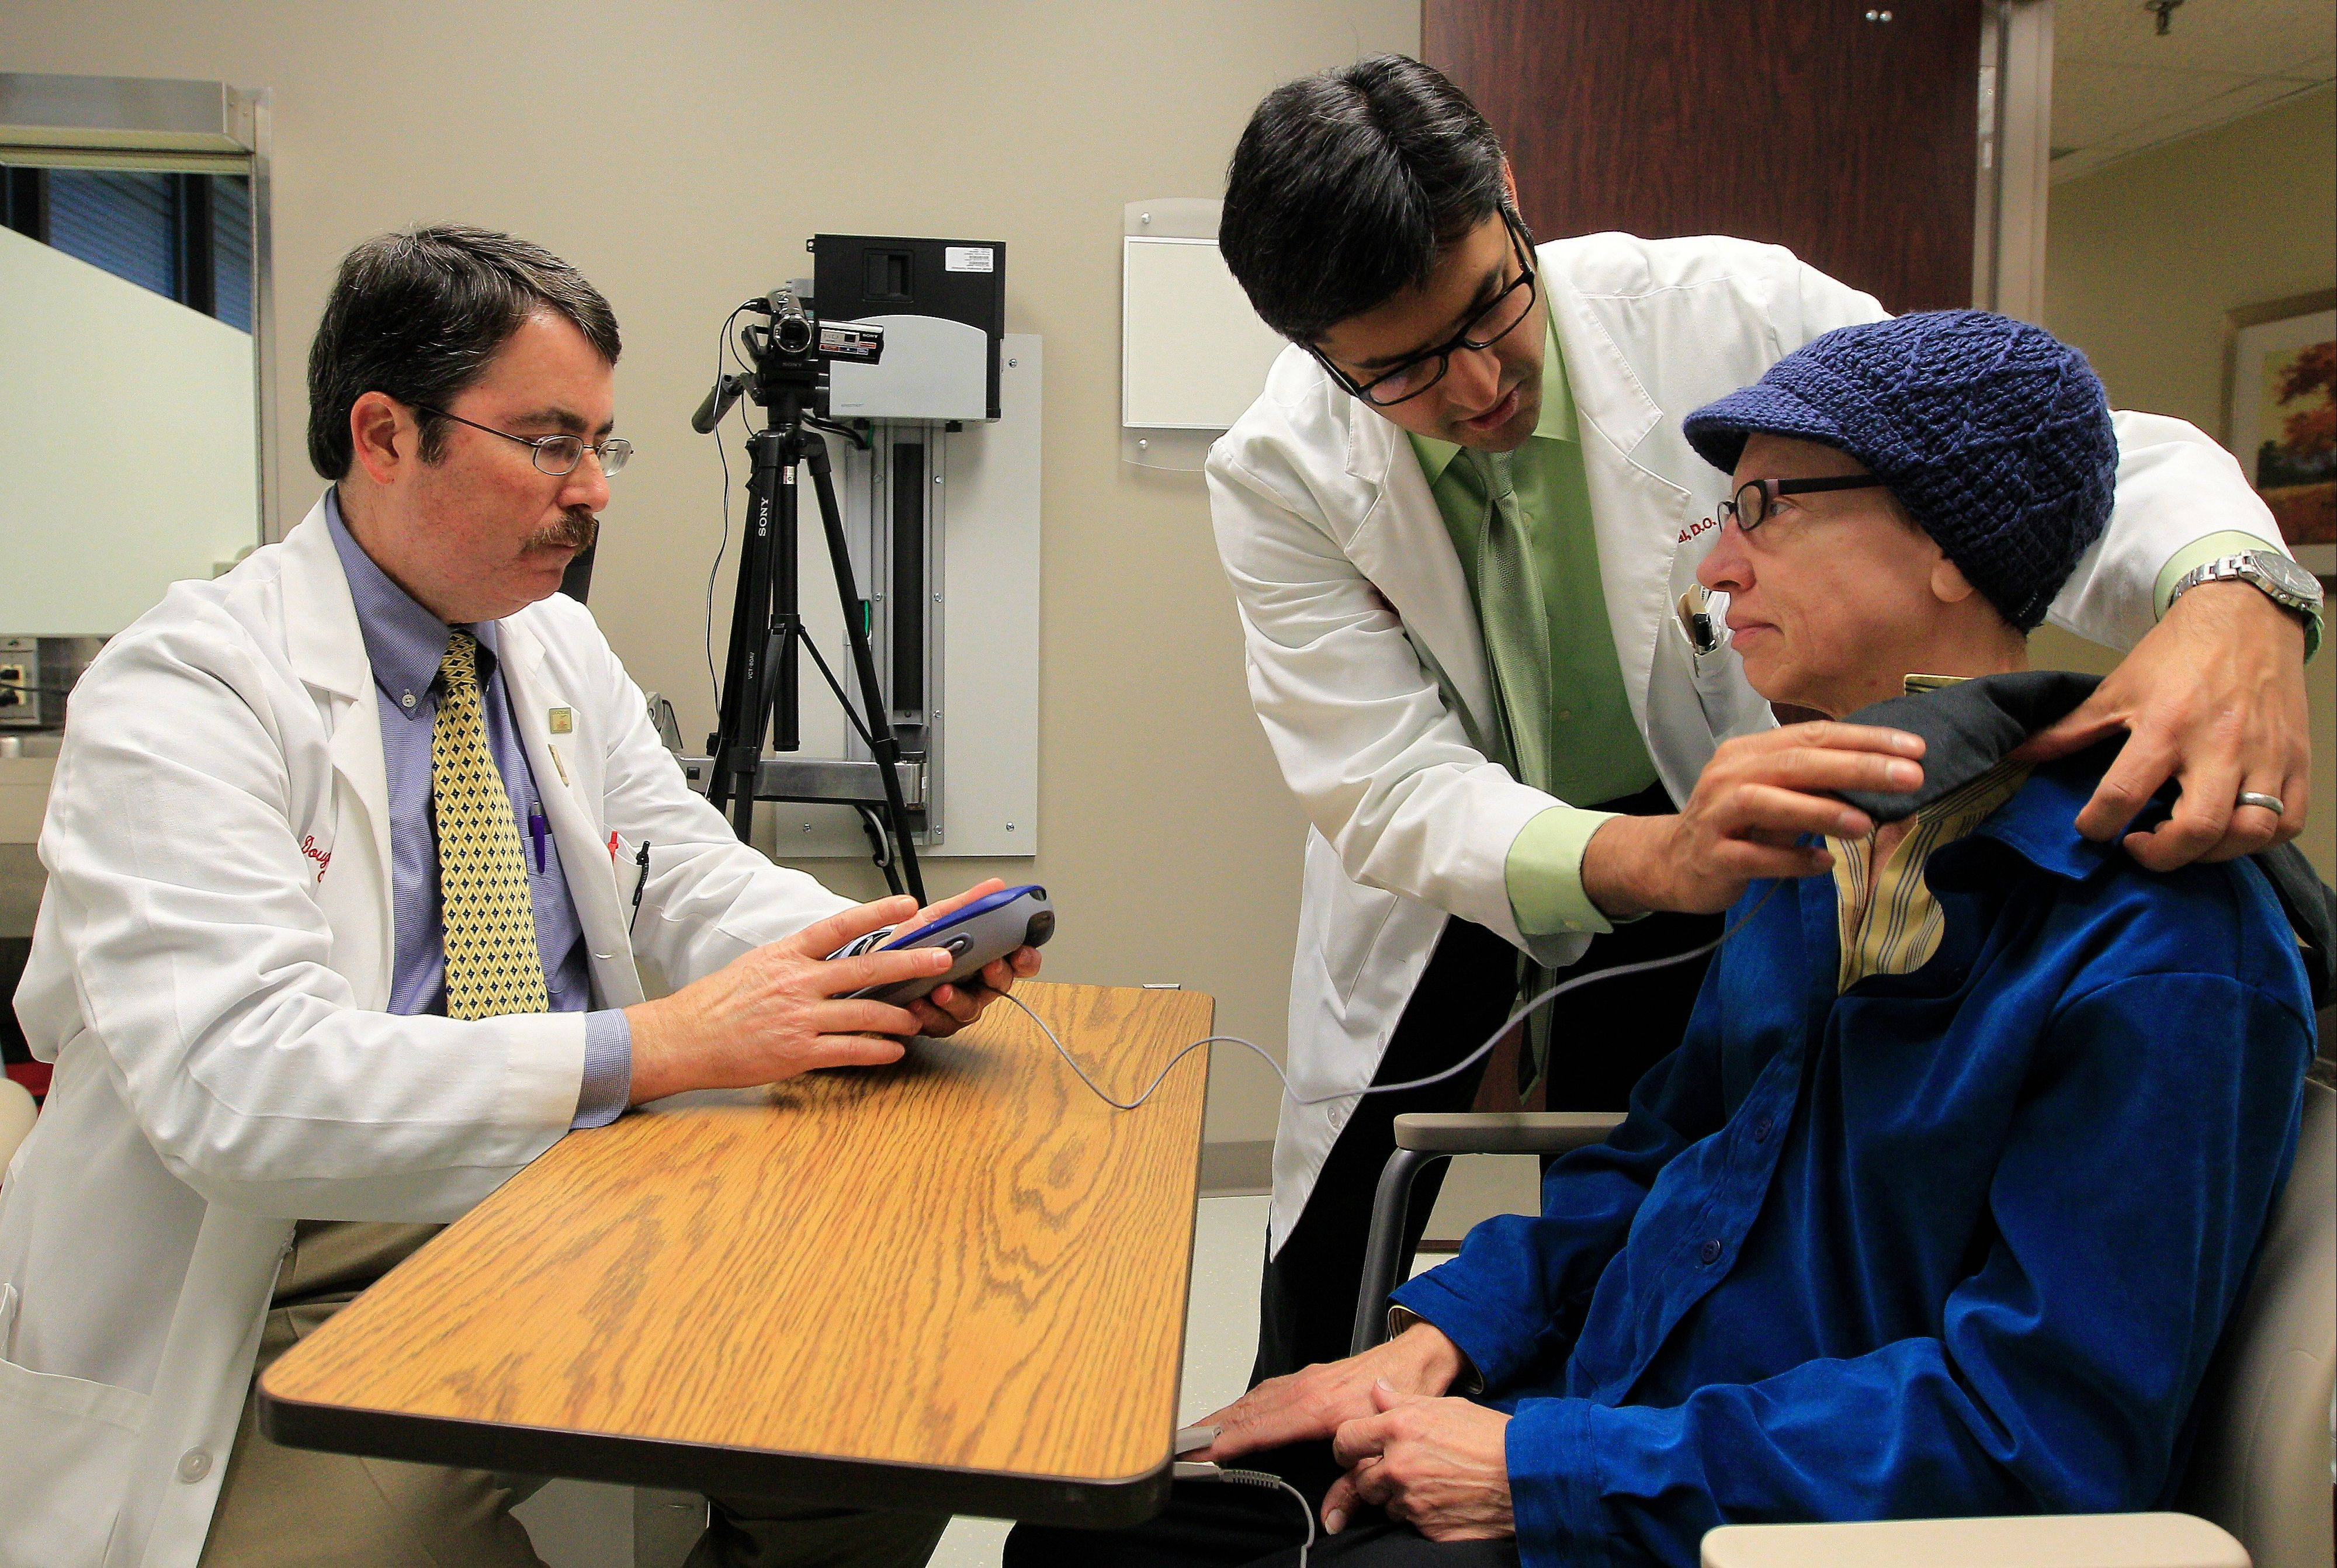 Dr. Doug Scharre, left, and Dr. Punit Agrawal, center, prepare Kathleen Sanford's deep brain stimulation device for monitoring.